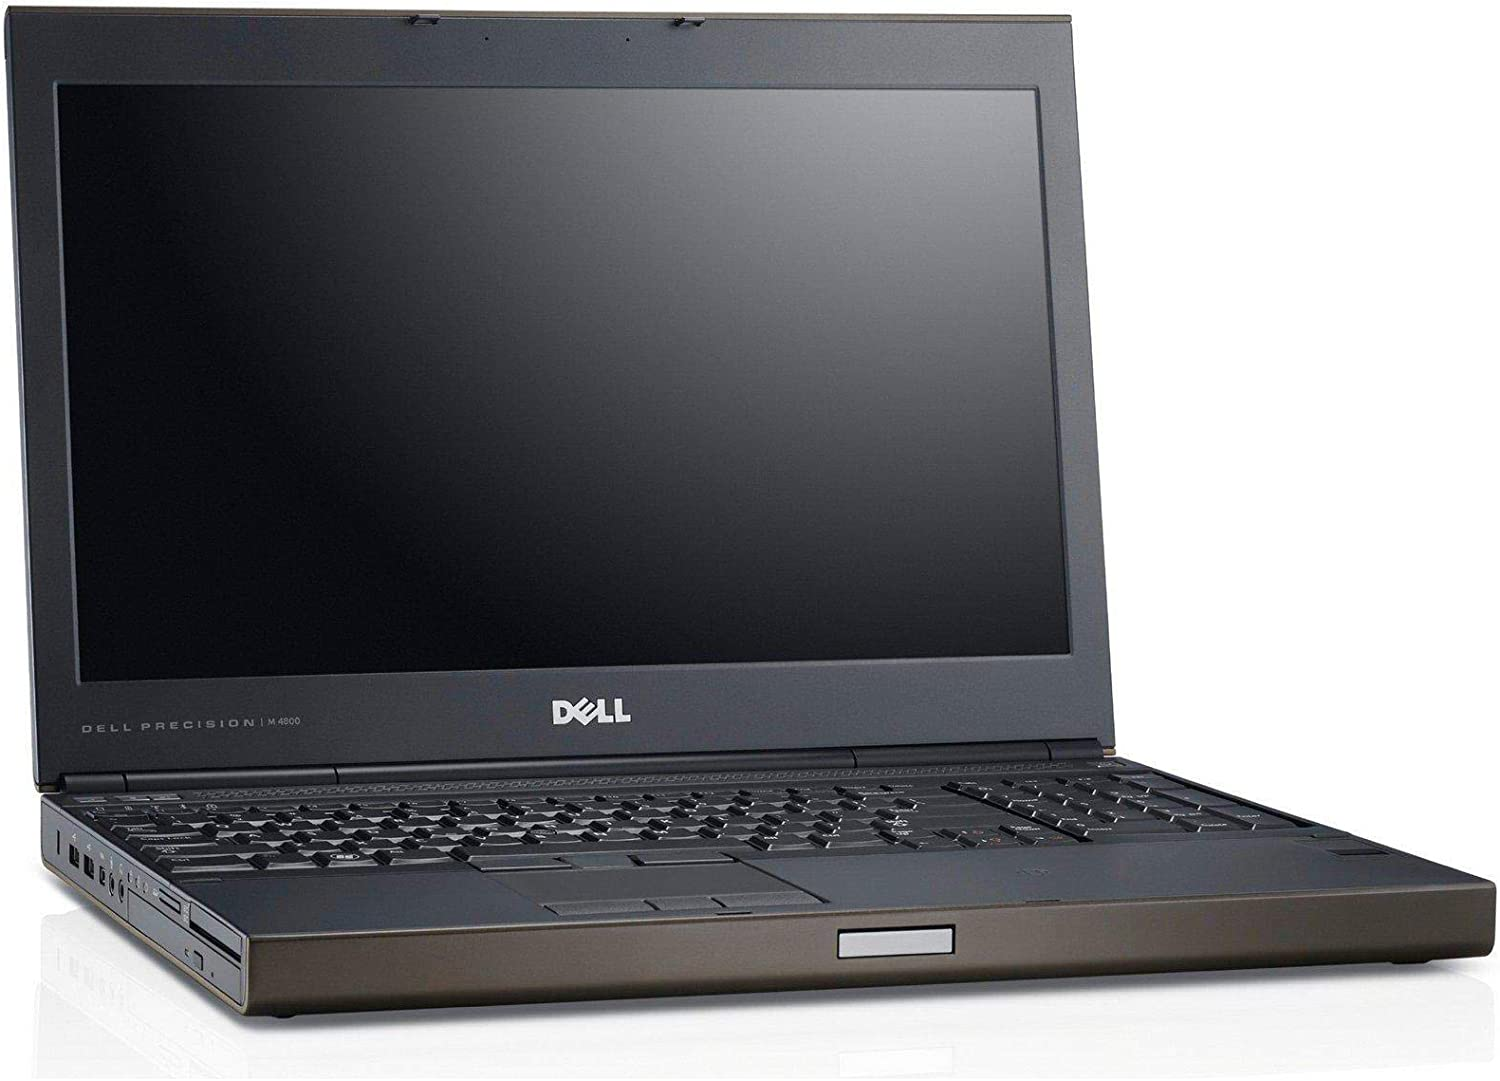 "Dell Precision M4800 15.6"" FHD Ultrapowerful Mobile Workstation Business Laptop - Intel Core i7-4810QM 2.8Ghz, 32GB RAM, 256GB SSD, NVIDIA Quadro K2100M, Windows 10 Pro (Renewed)"